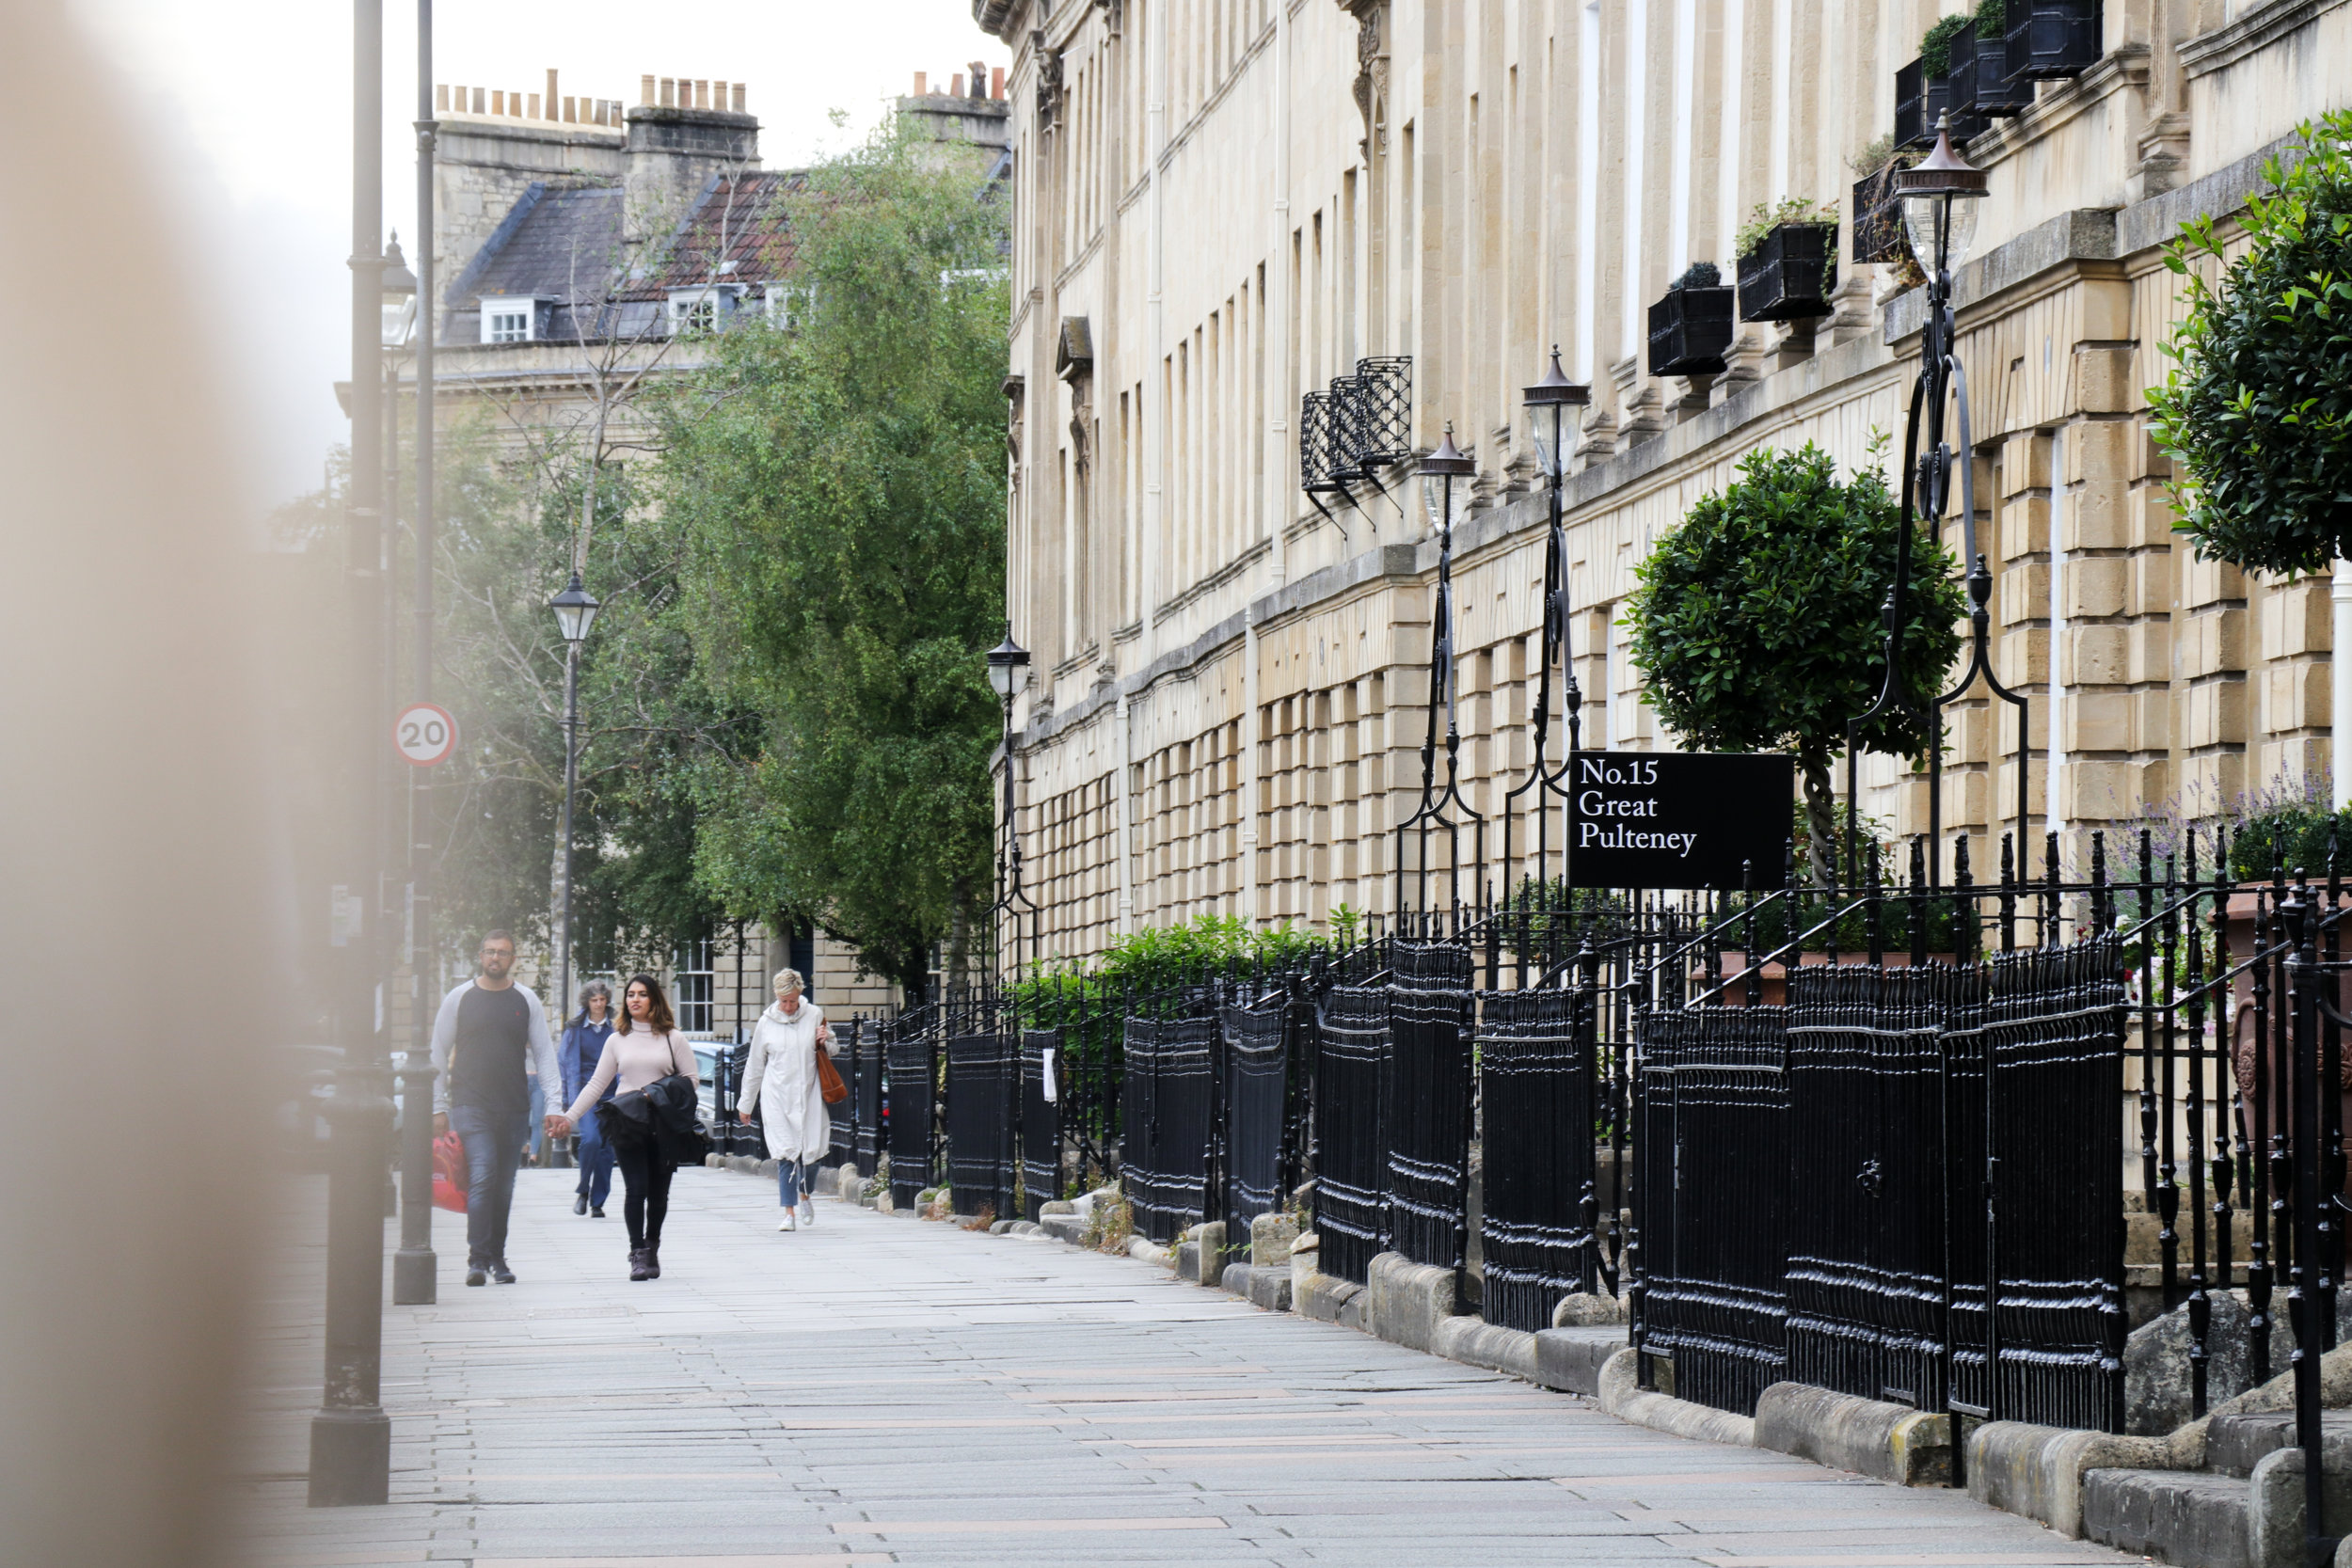 Day Spa Experience at no.15 Great Pulteney - Bath - 20th August 2018